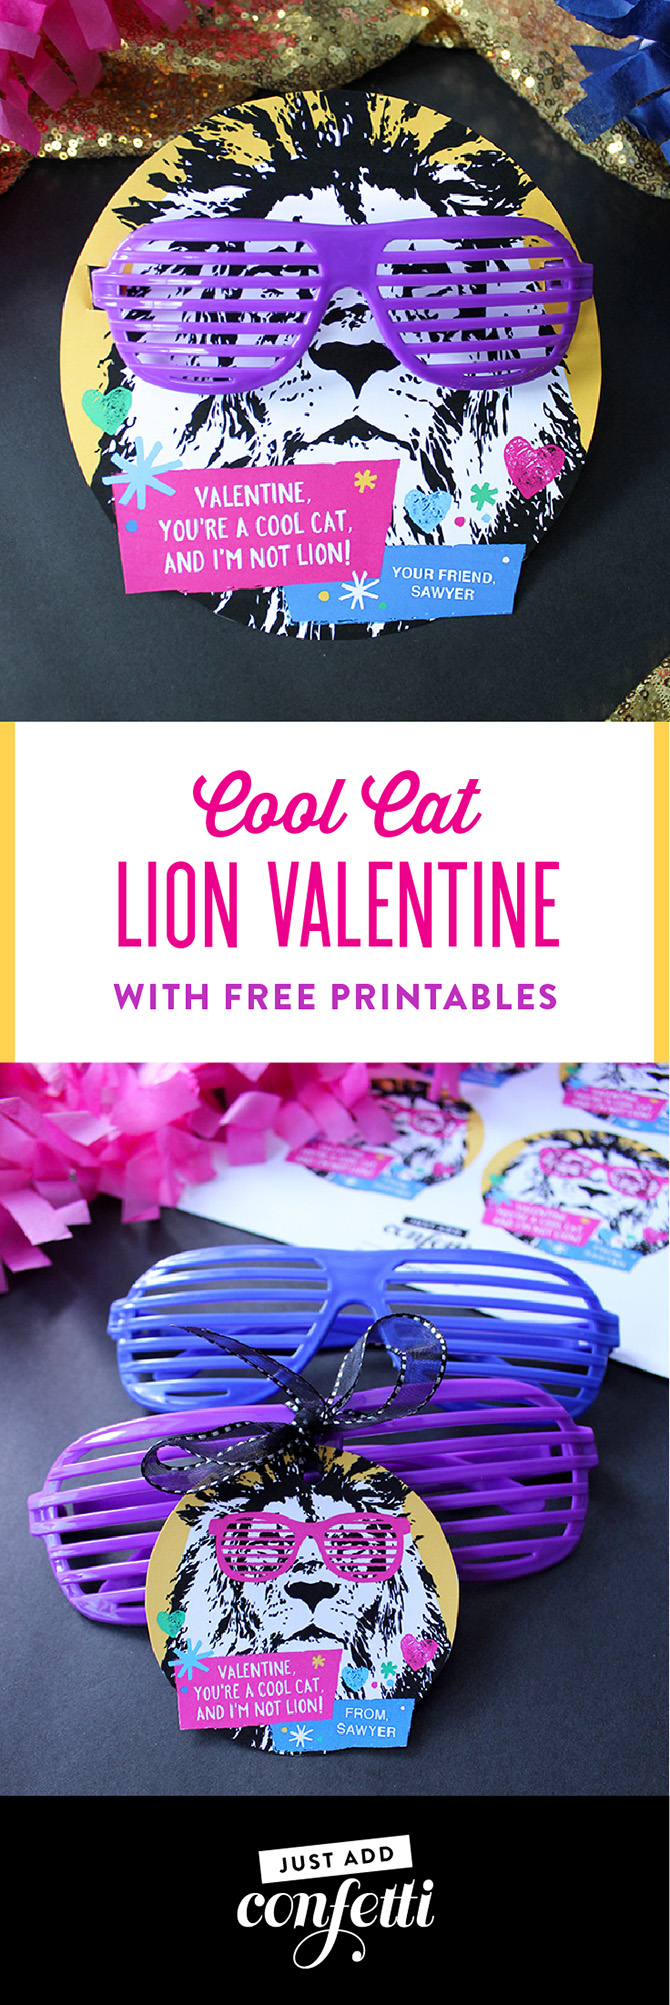 Cool Cat Lion Valentine Printable, Cool Cat Lion Valentine, lion valentine, valentine free printable, free printable, kids valentine, classroom valentine, non-candy valentine, glasses valentine, party animal, party animal valentine, Just Add Confetti, Just Add Confetti printable,